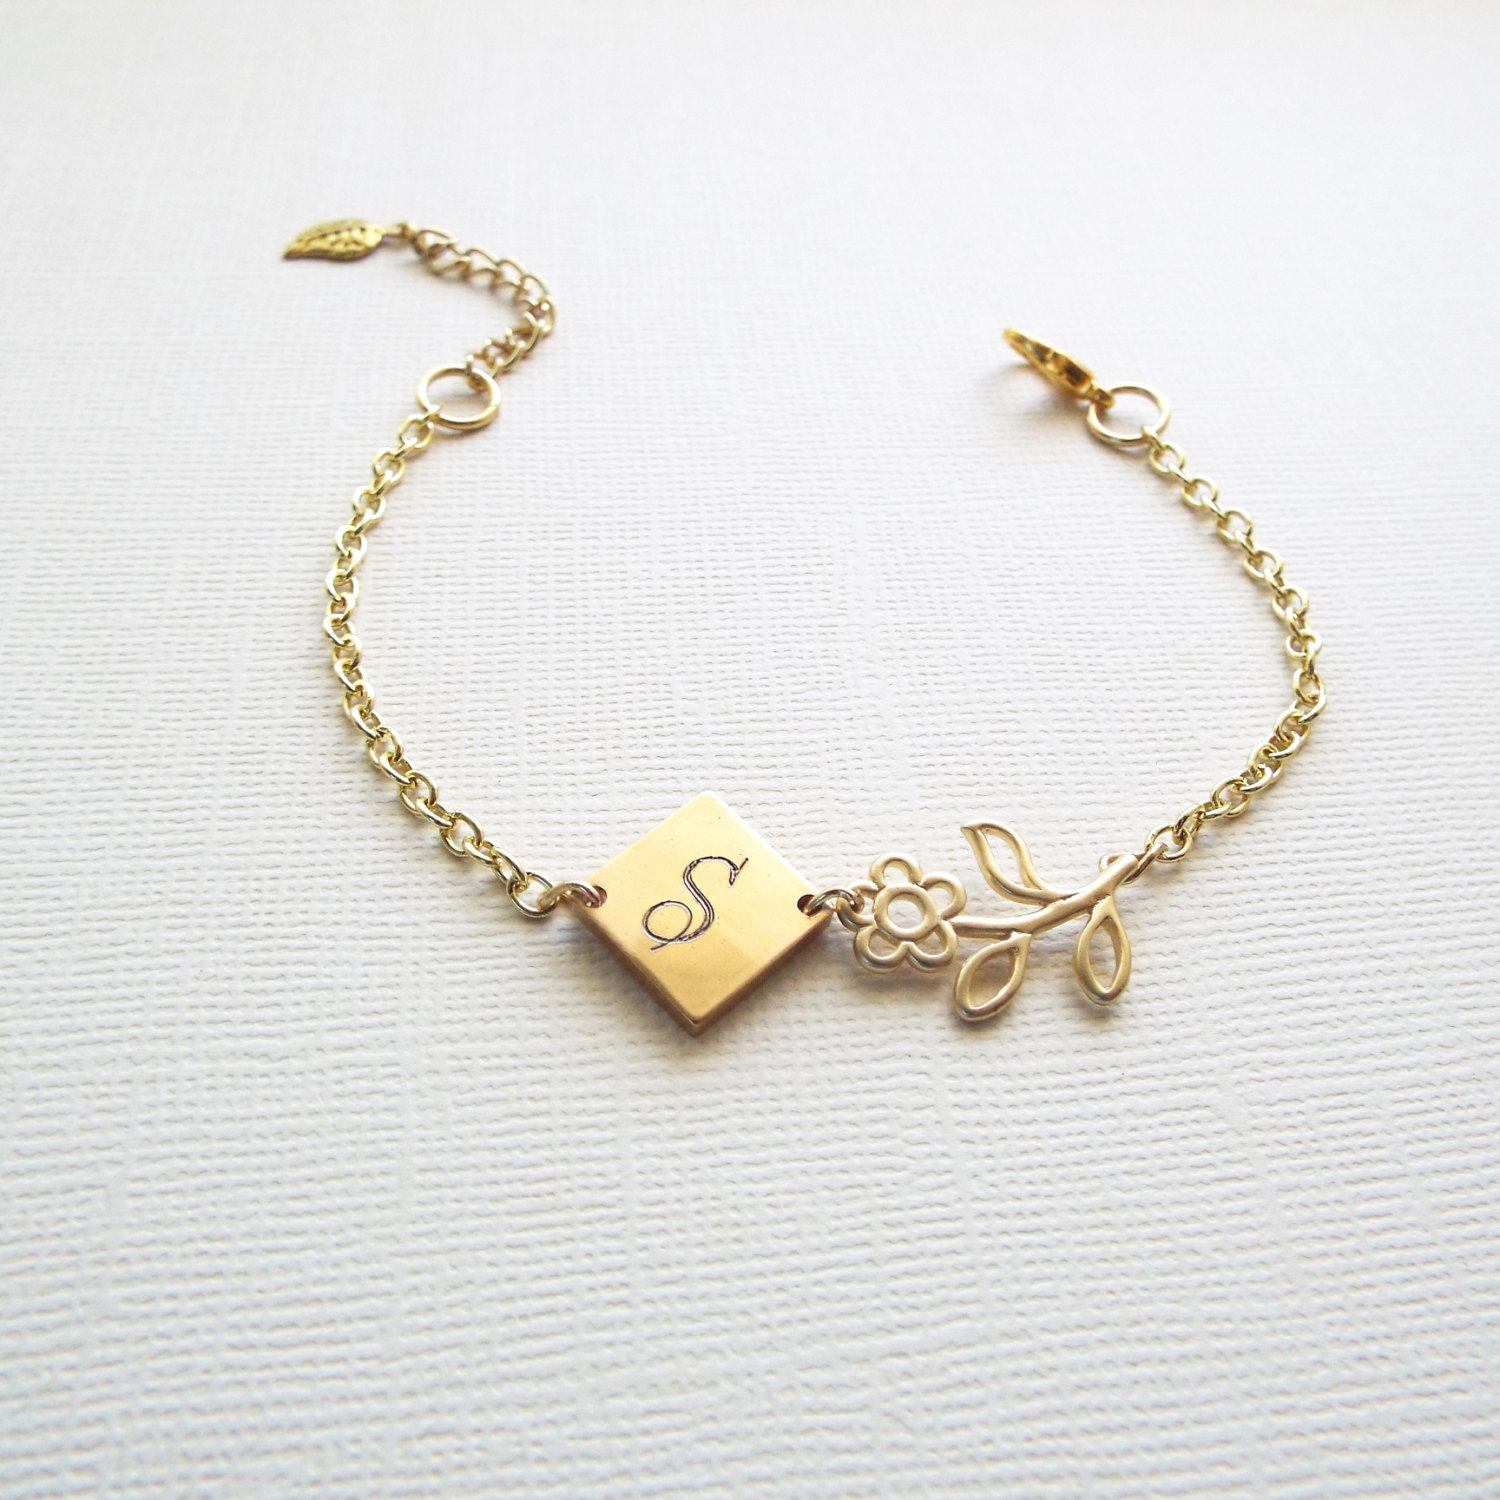 Personalized Charm Bracelet: Mothers Day Gift, Personalized Bracelet, Gold Initial